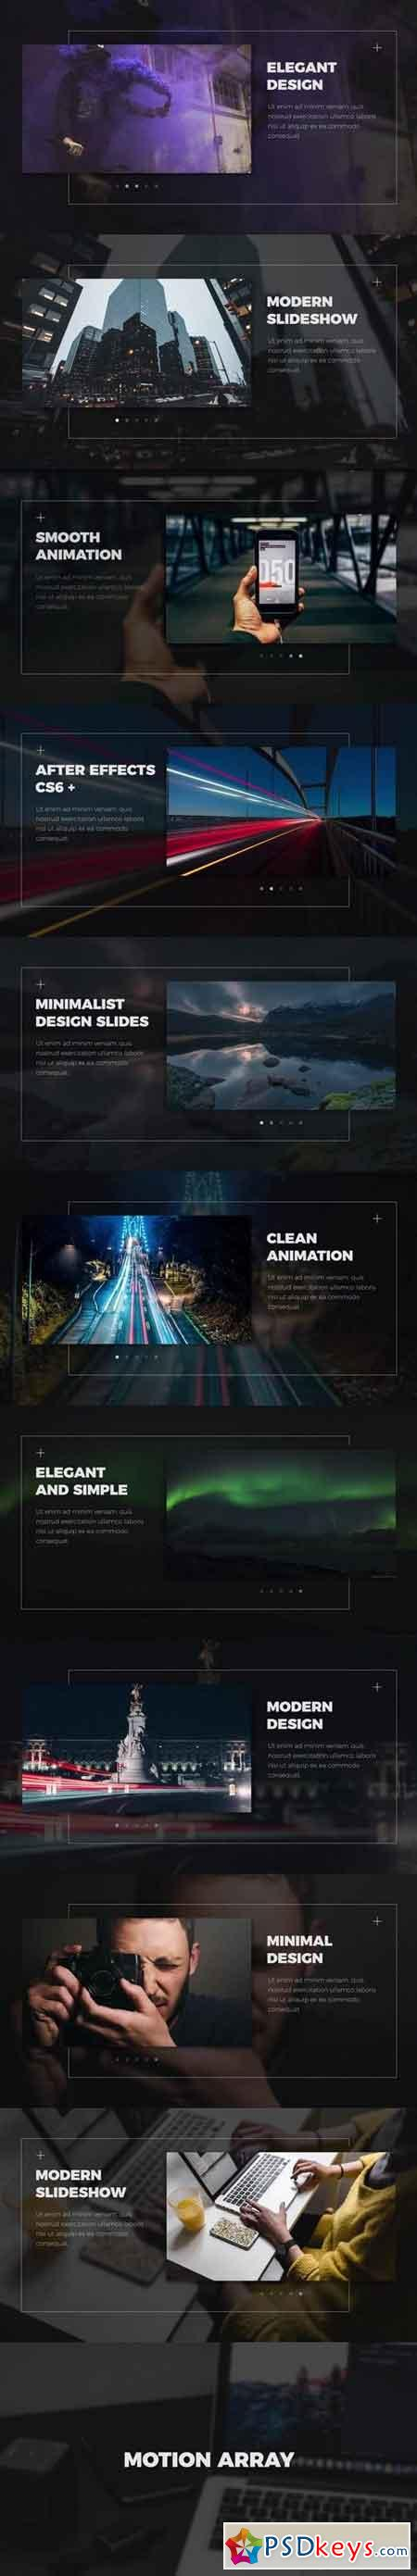 Modern Slideshow Premiere Pro Templates 57401 - After Effects Projects